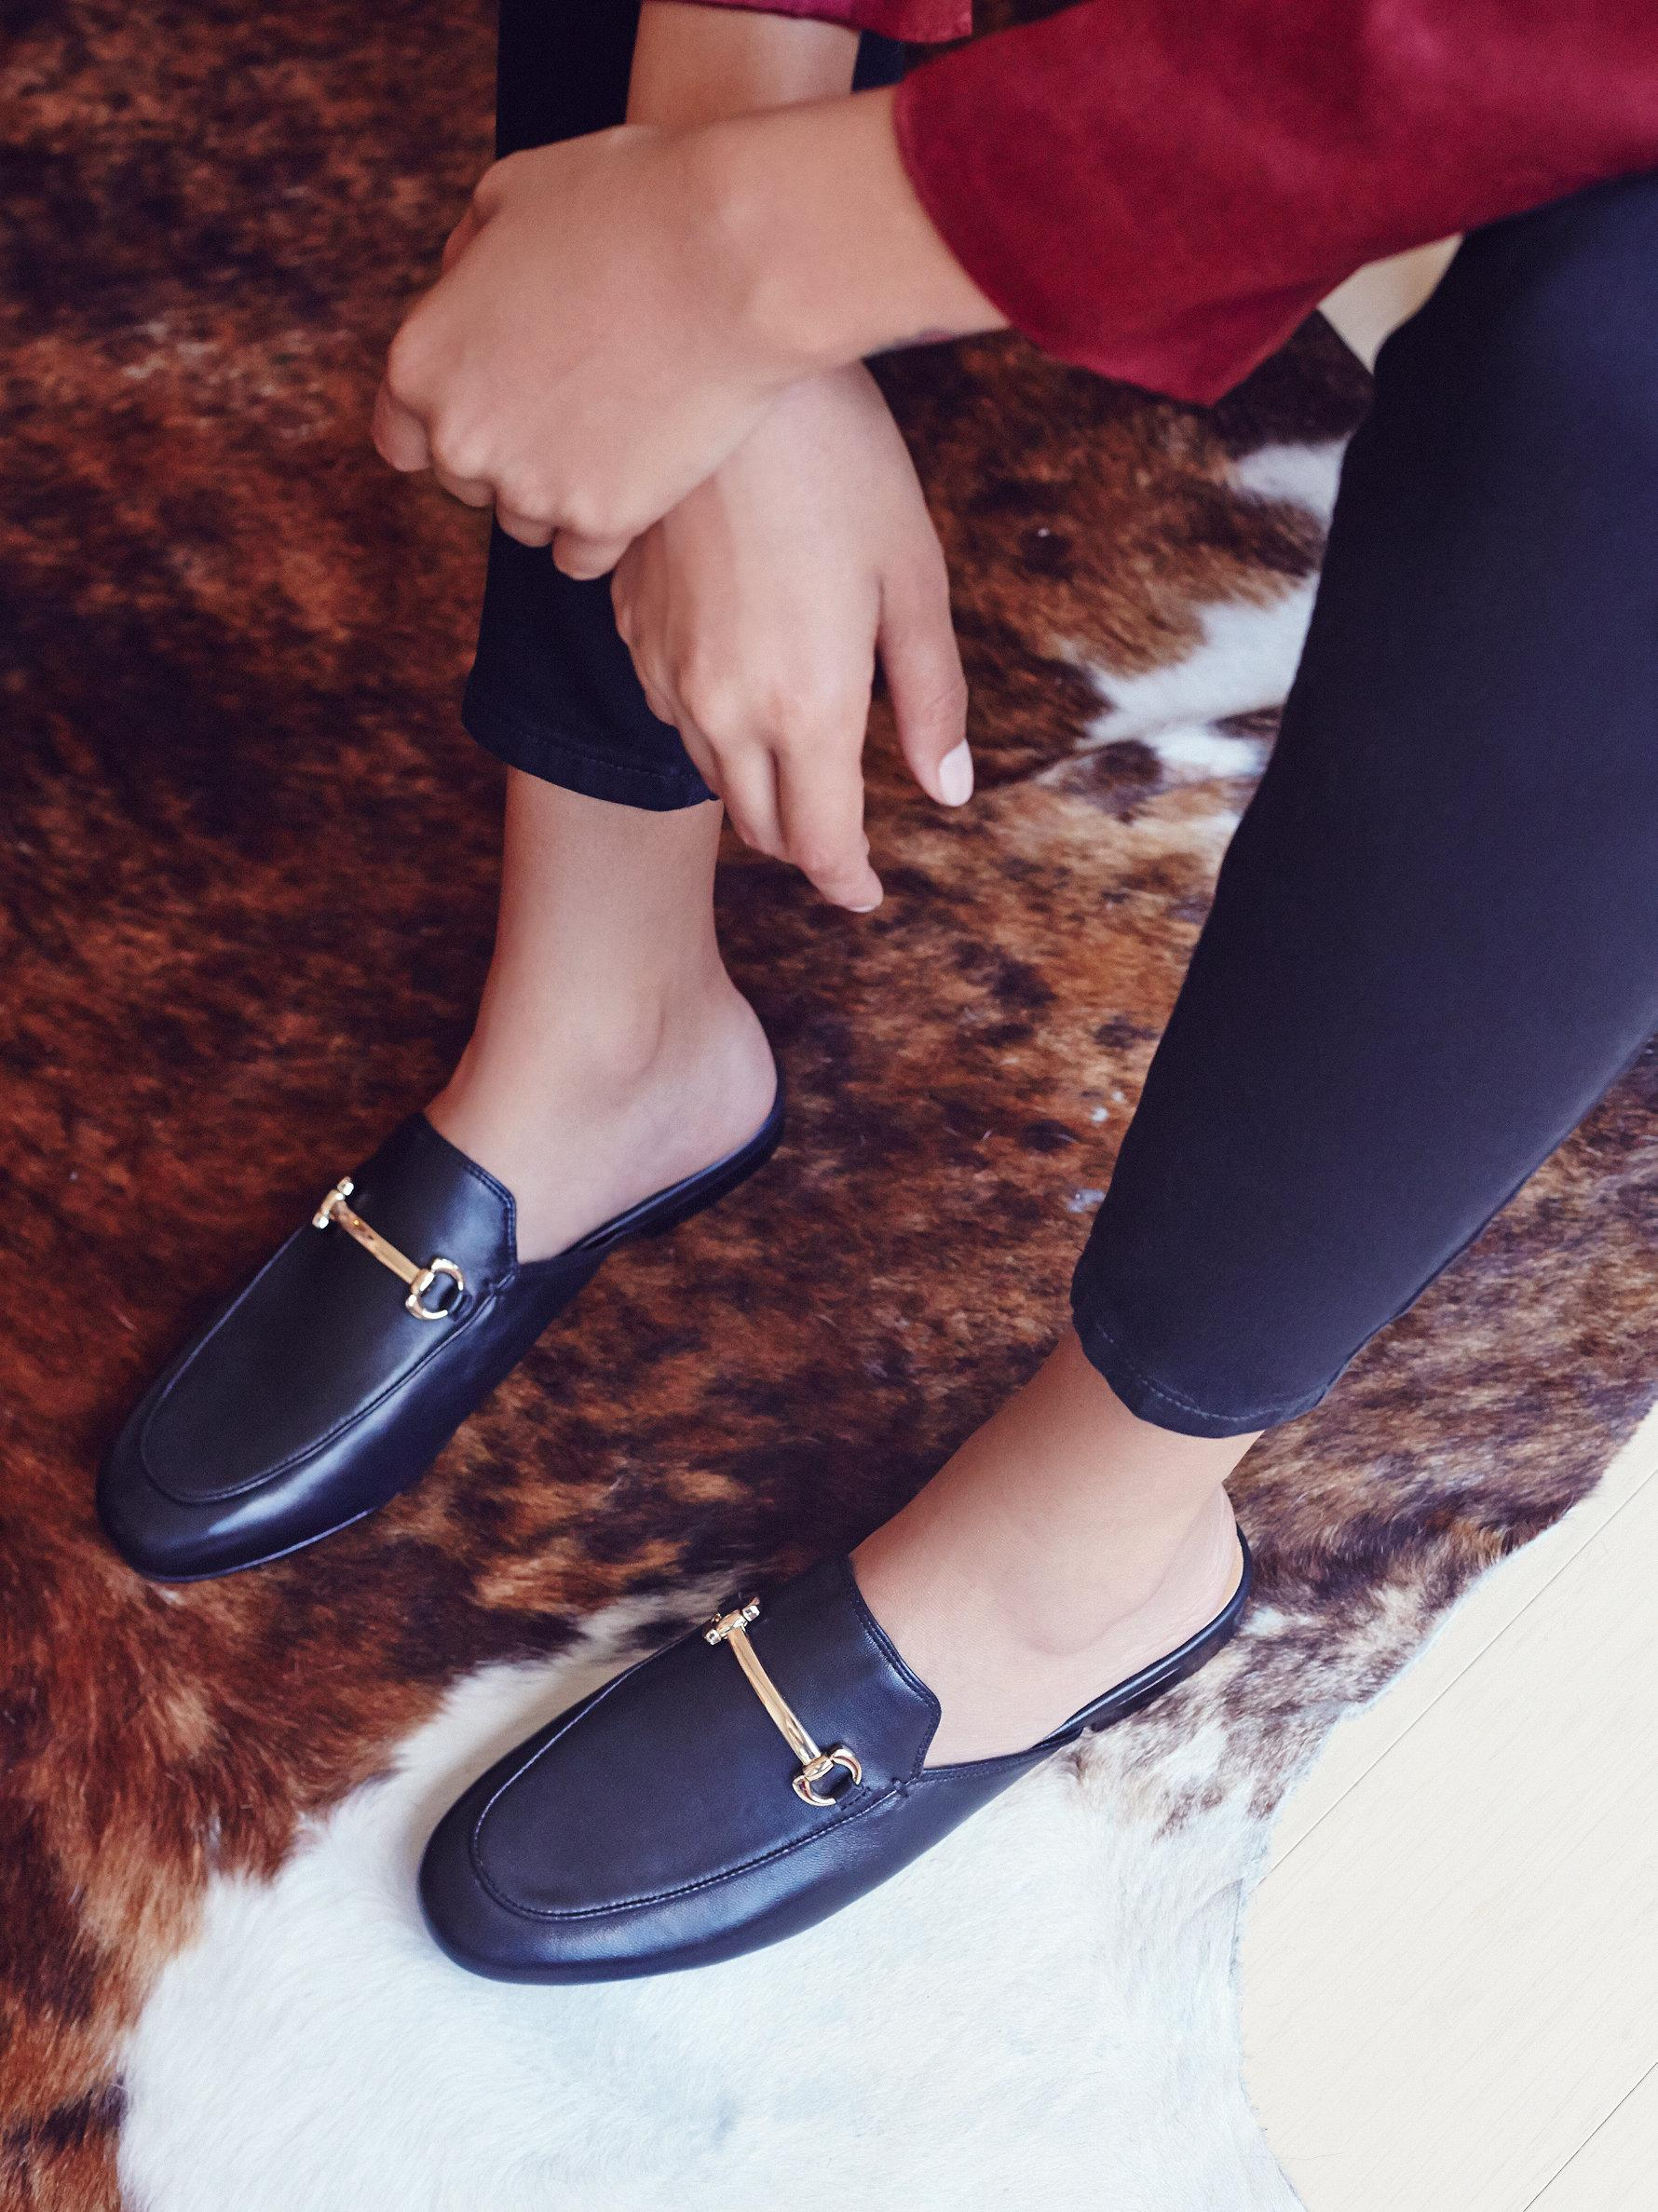 The season of stylish flats is here! Fall shoe love: Free People Gigi Slip-On Loafer | glitterinc.com | @glitterinc - 15 Trendy Flats To Fall in Love With This Season by NC style blogger Glitter, Inc.